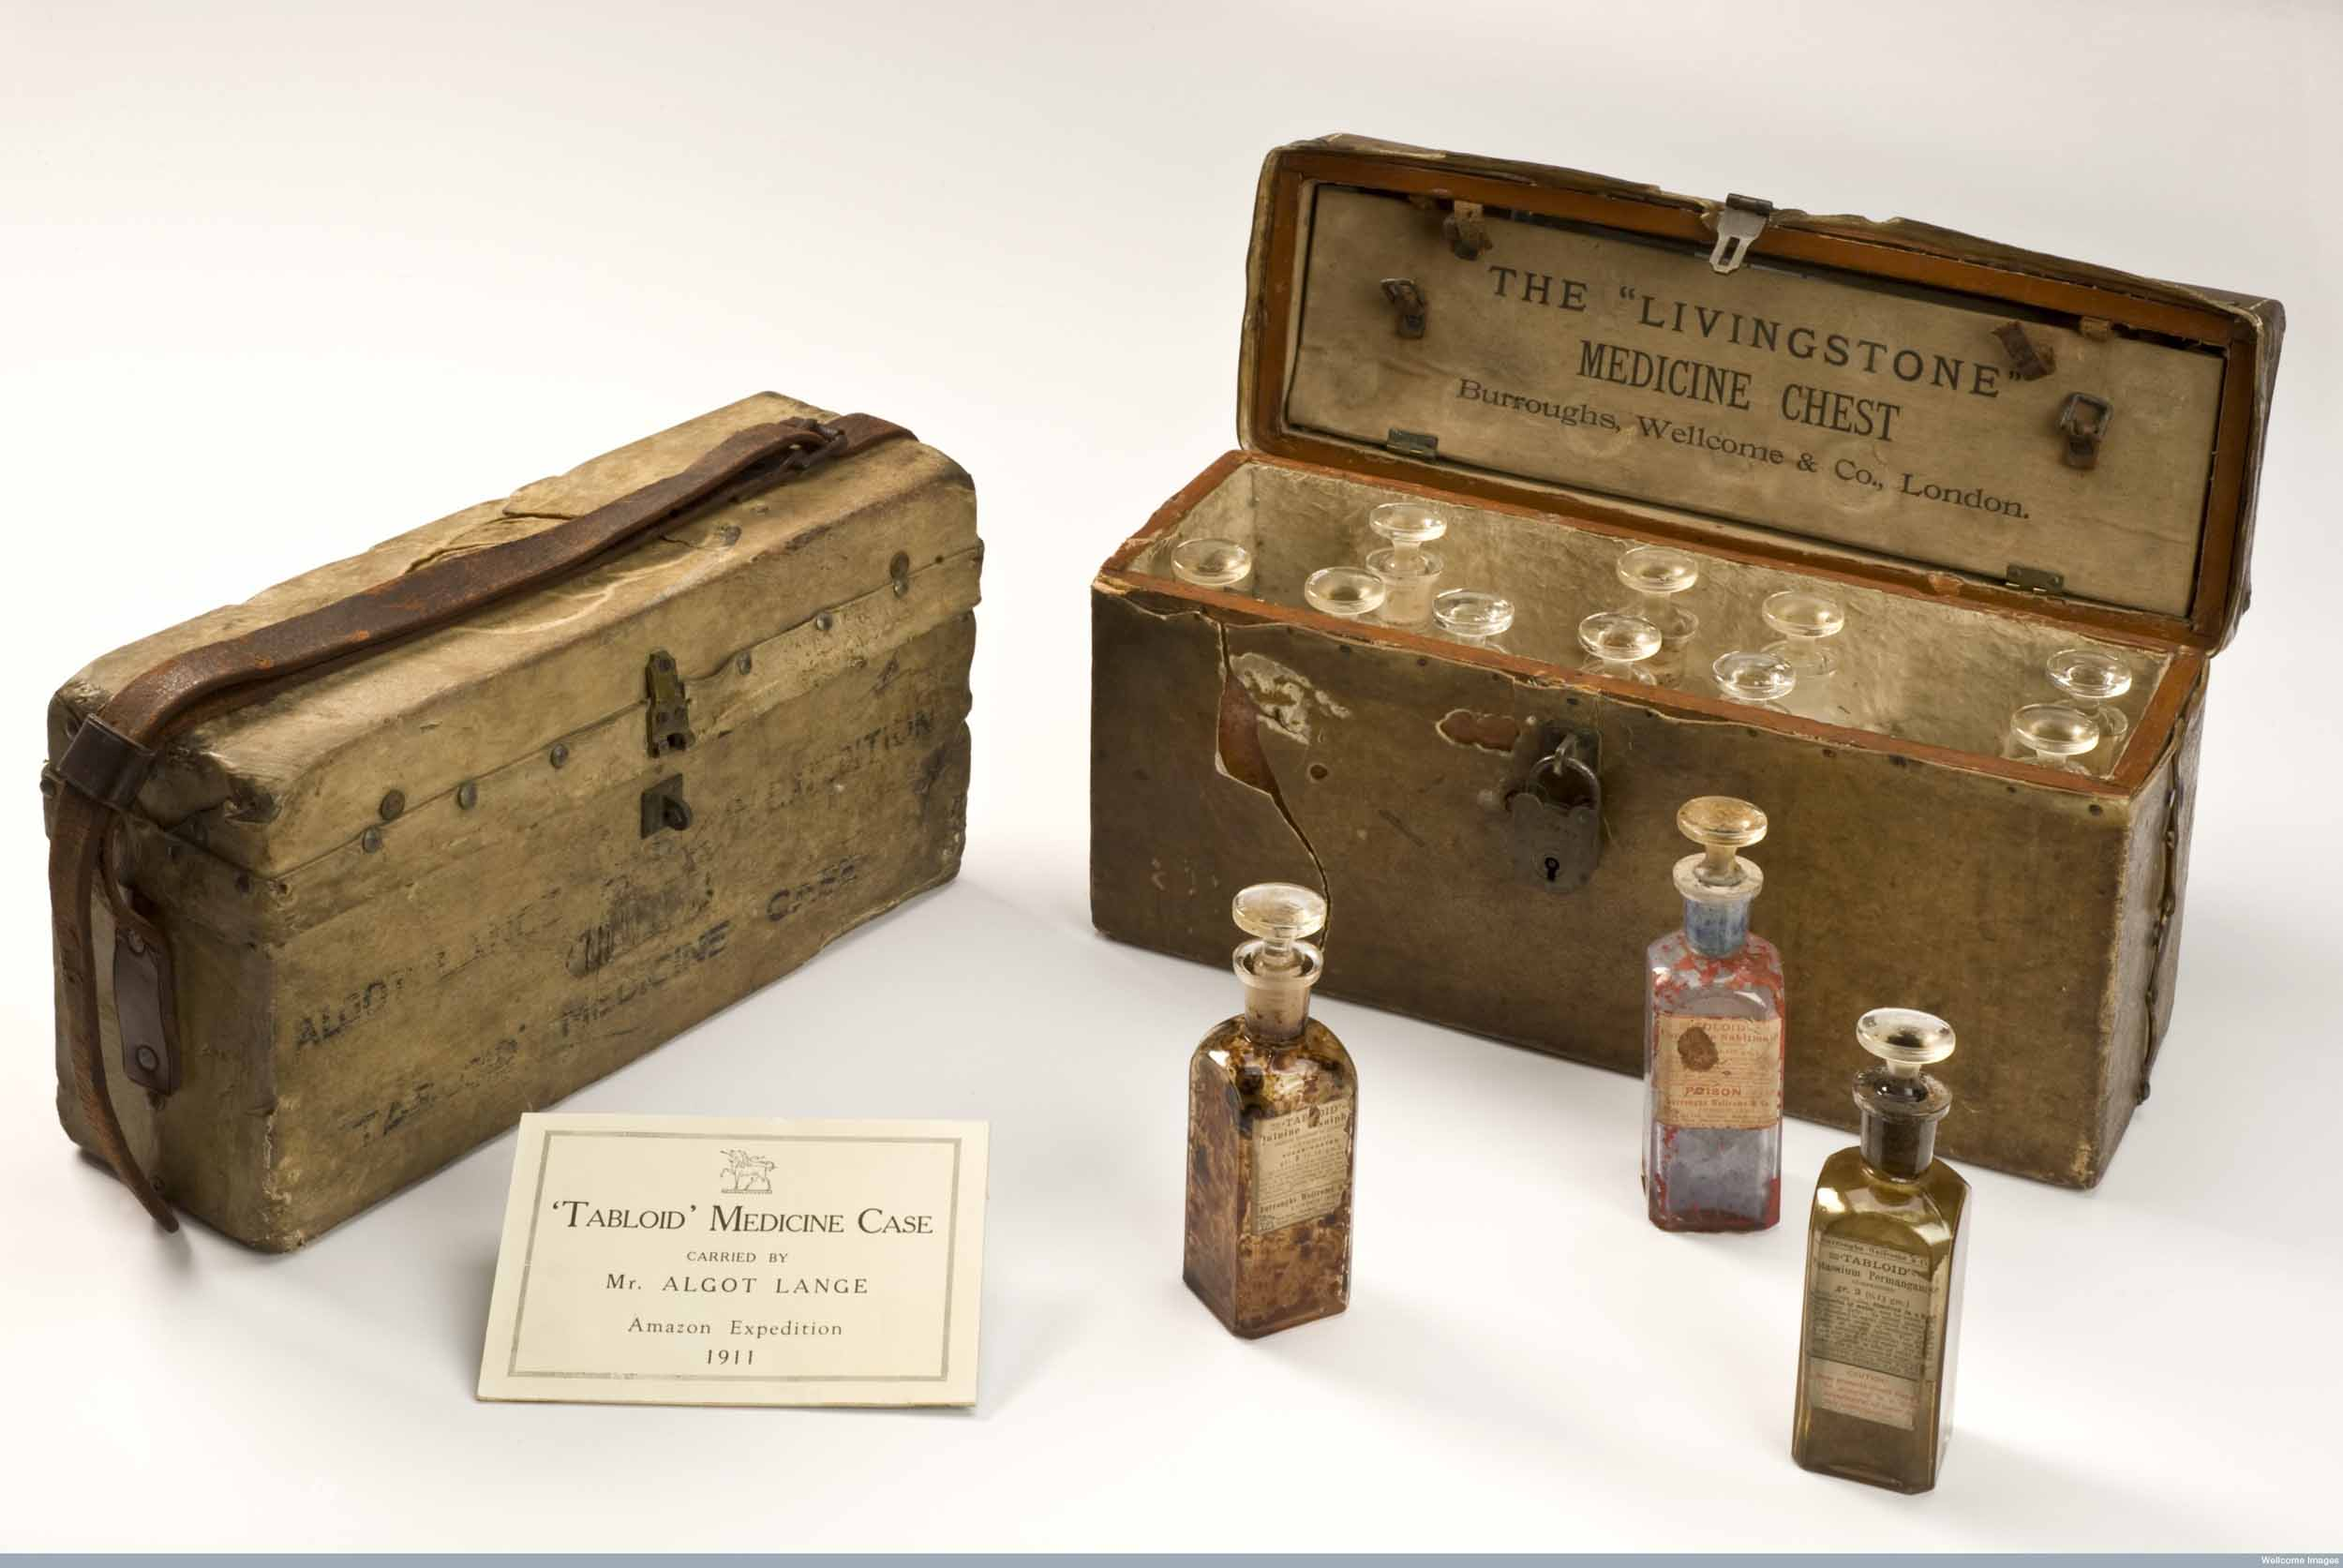 L0059114 'Livingstone' medicine chest covered in cow hide, England, 1